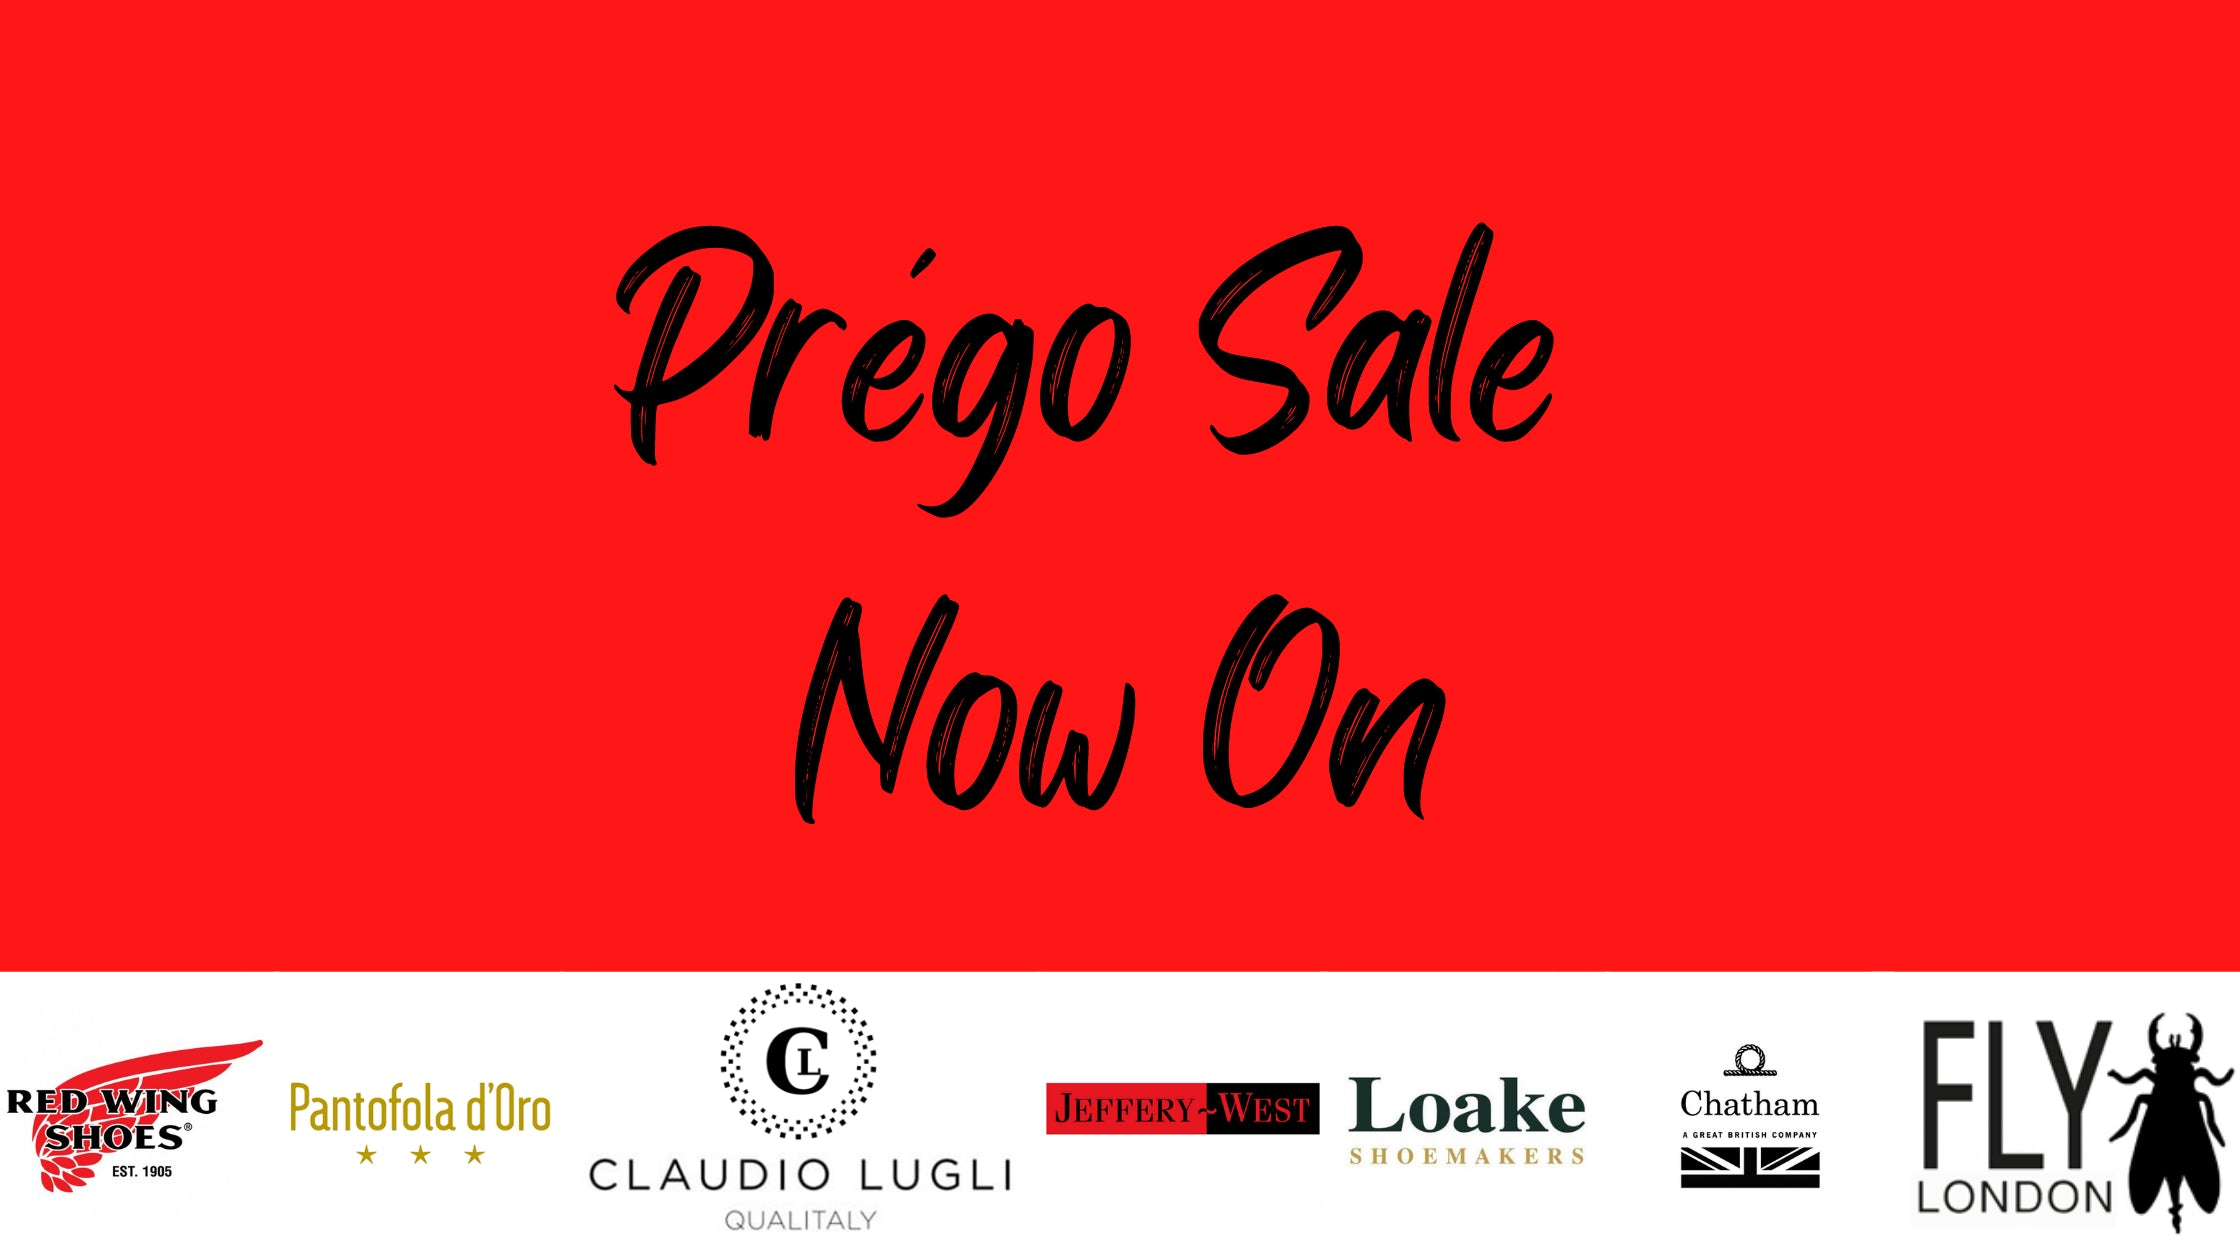 Jeffery~West